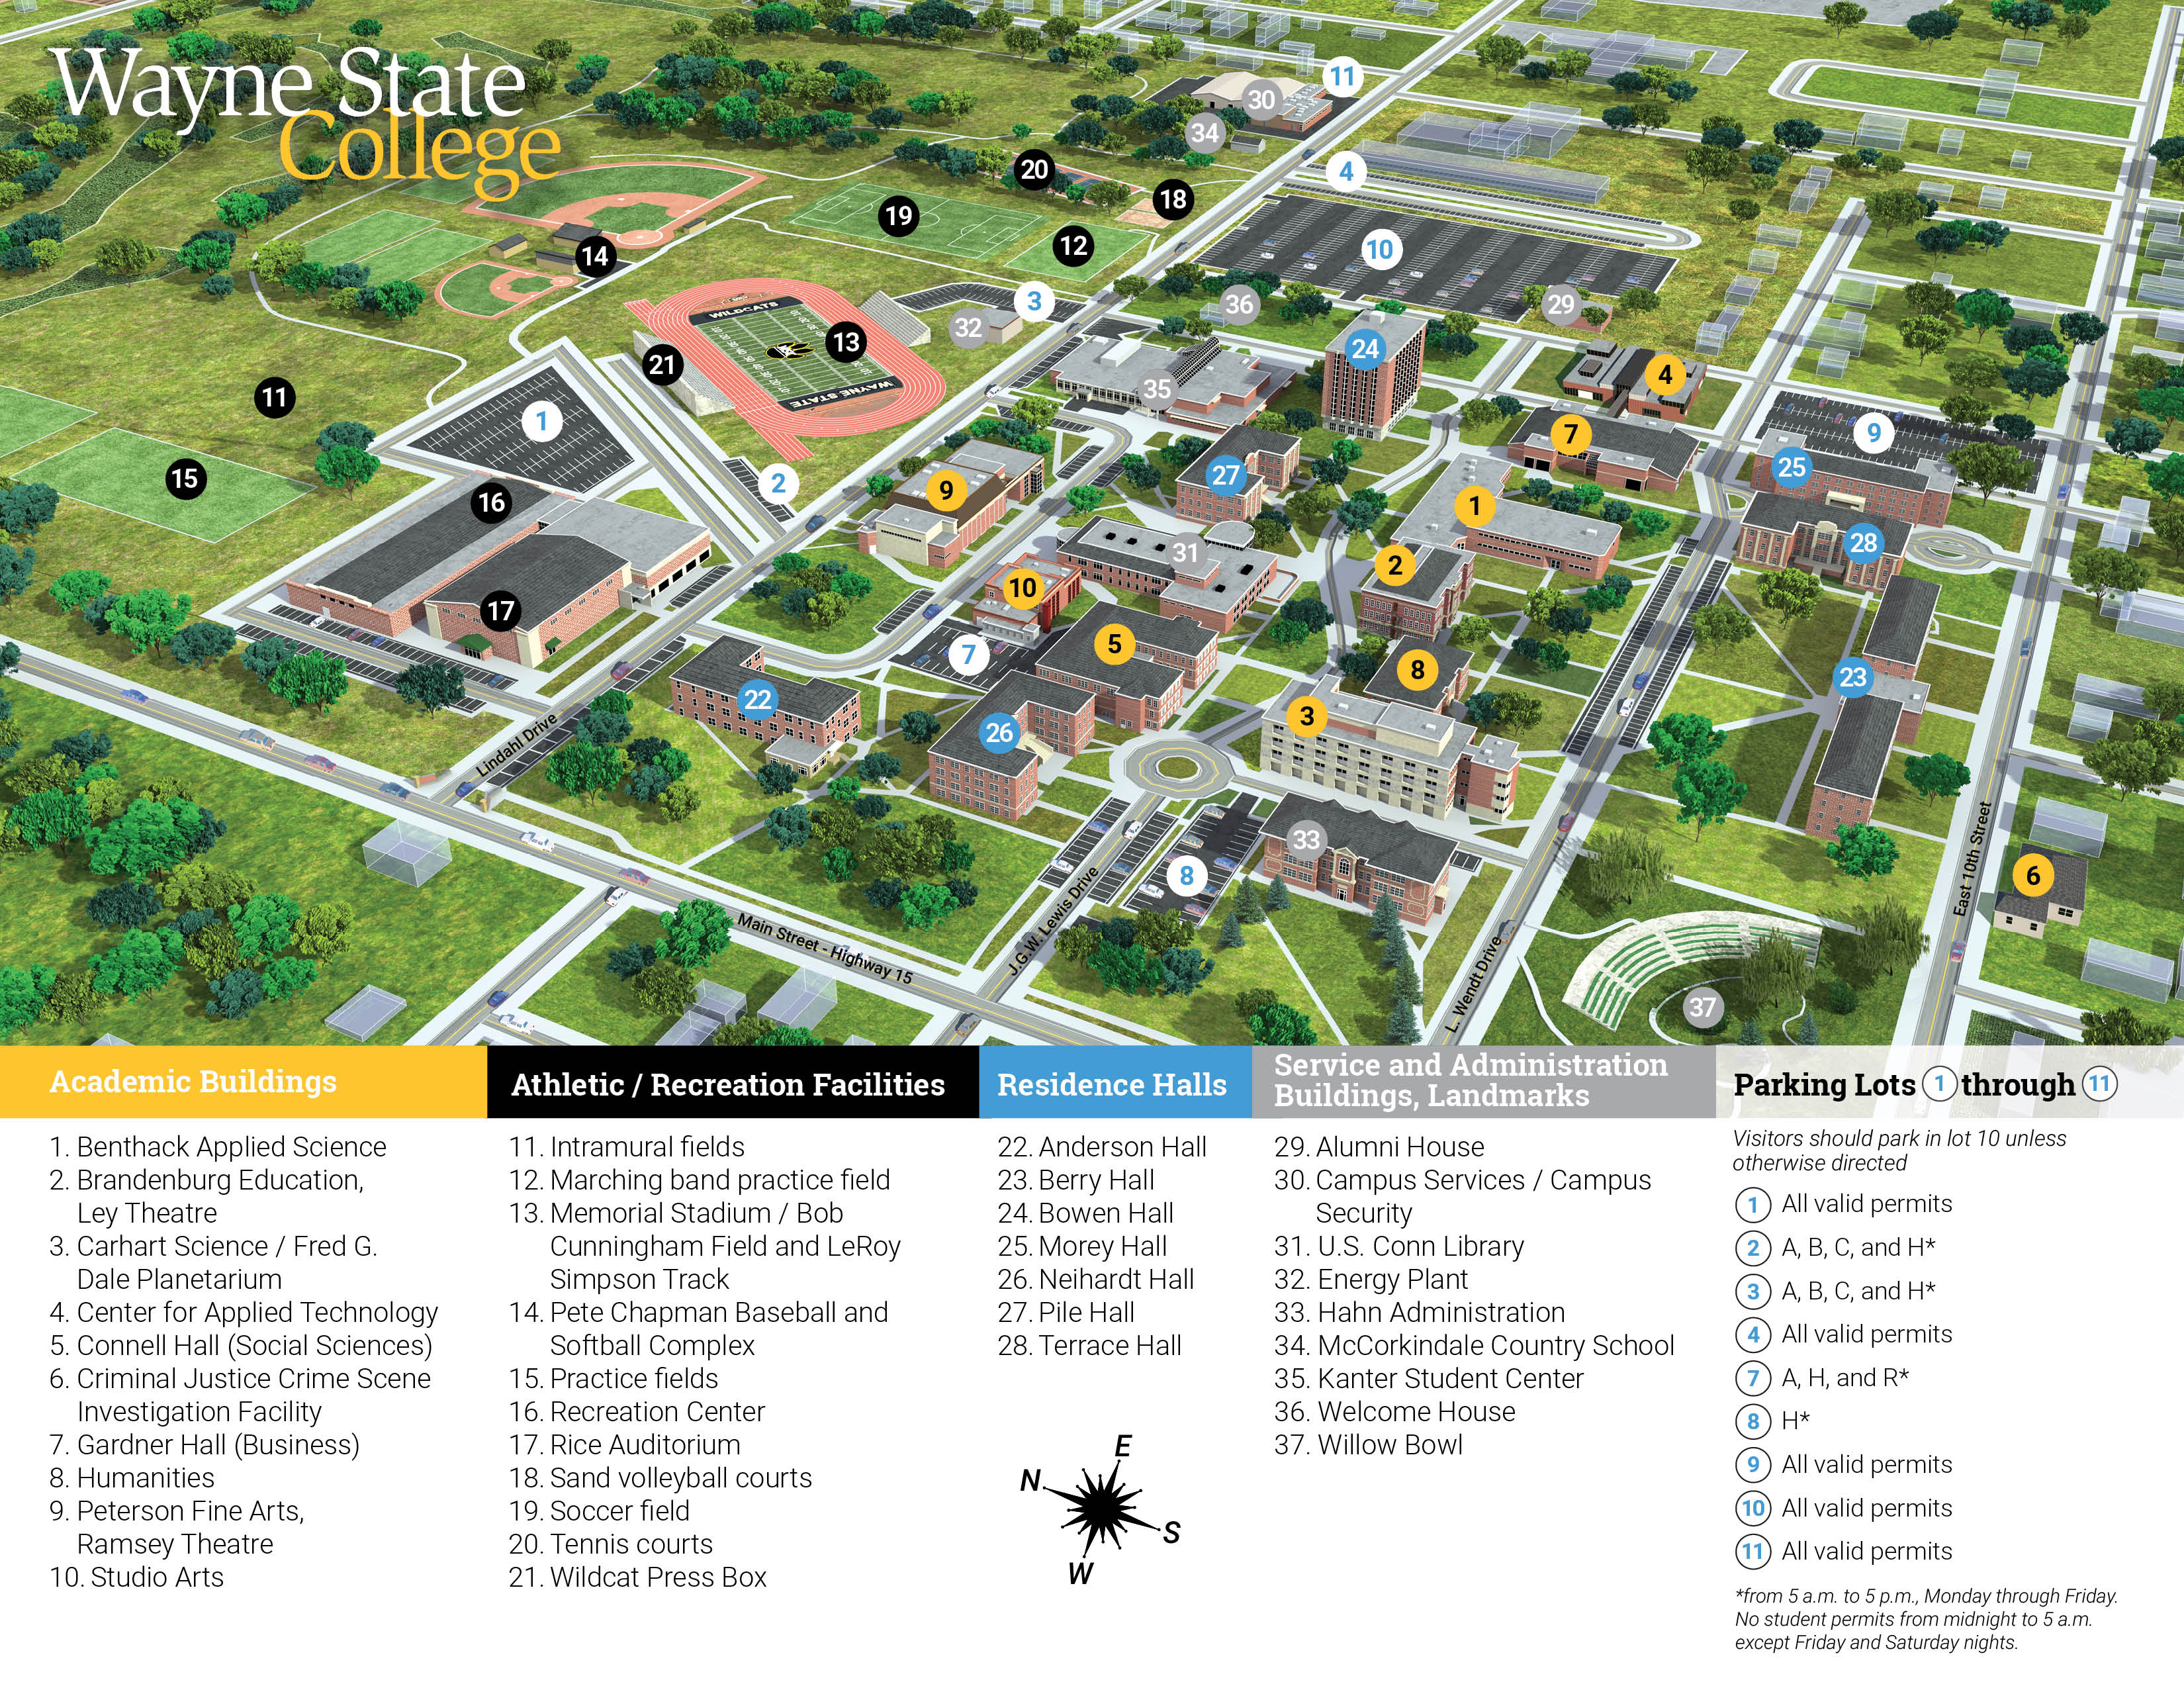 Wayne State College Campus Map, 2019